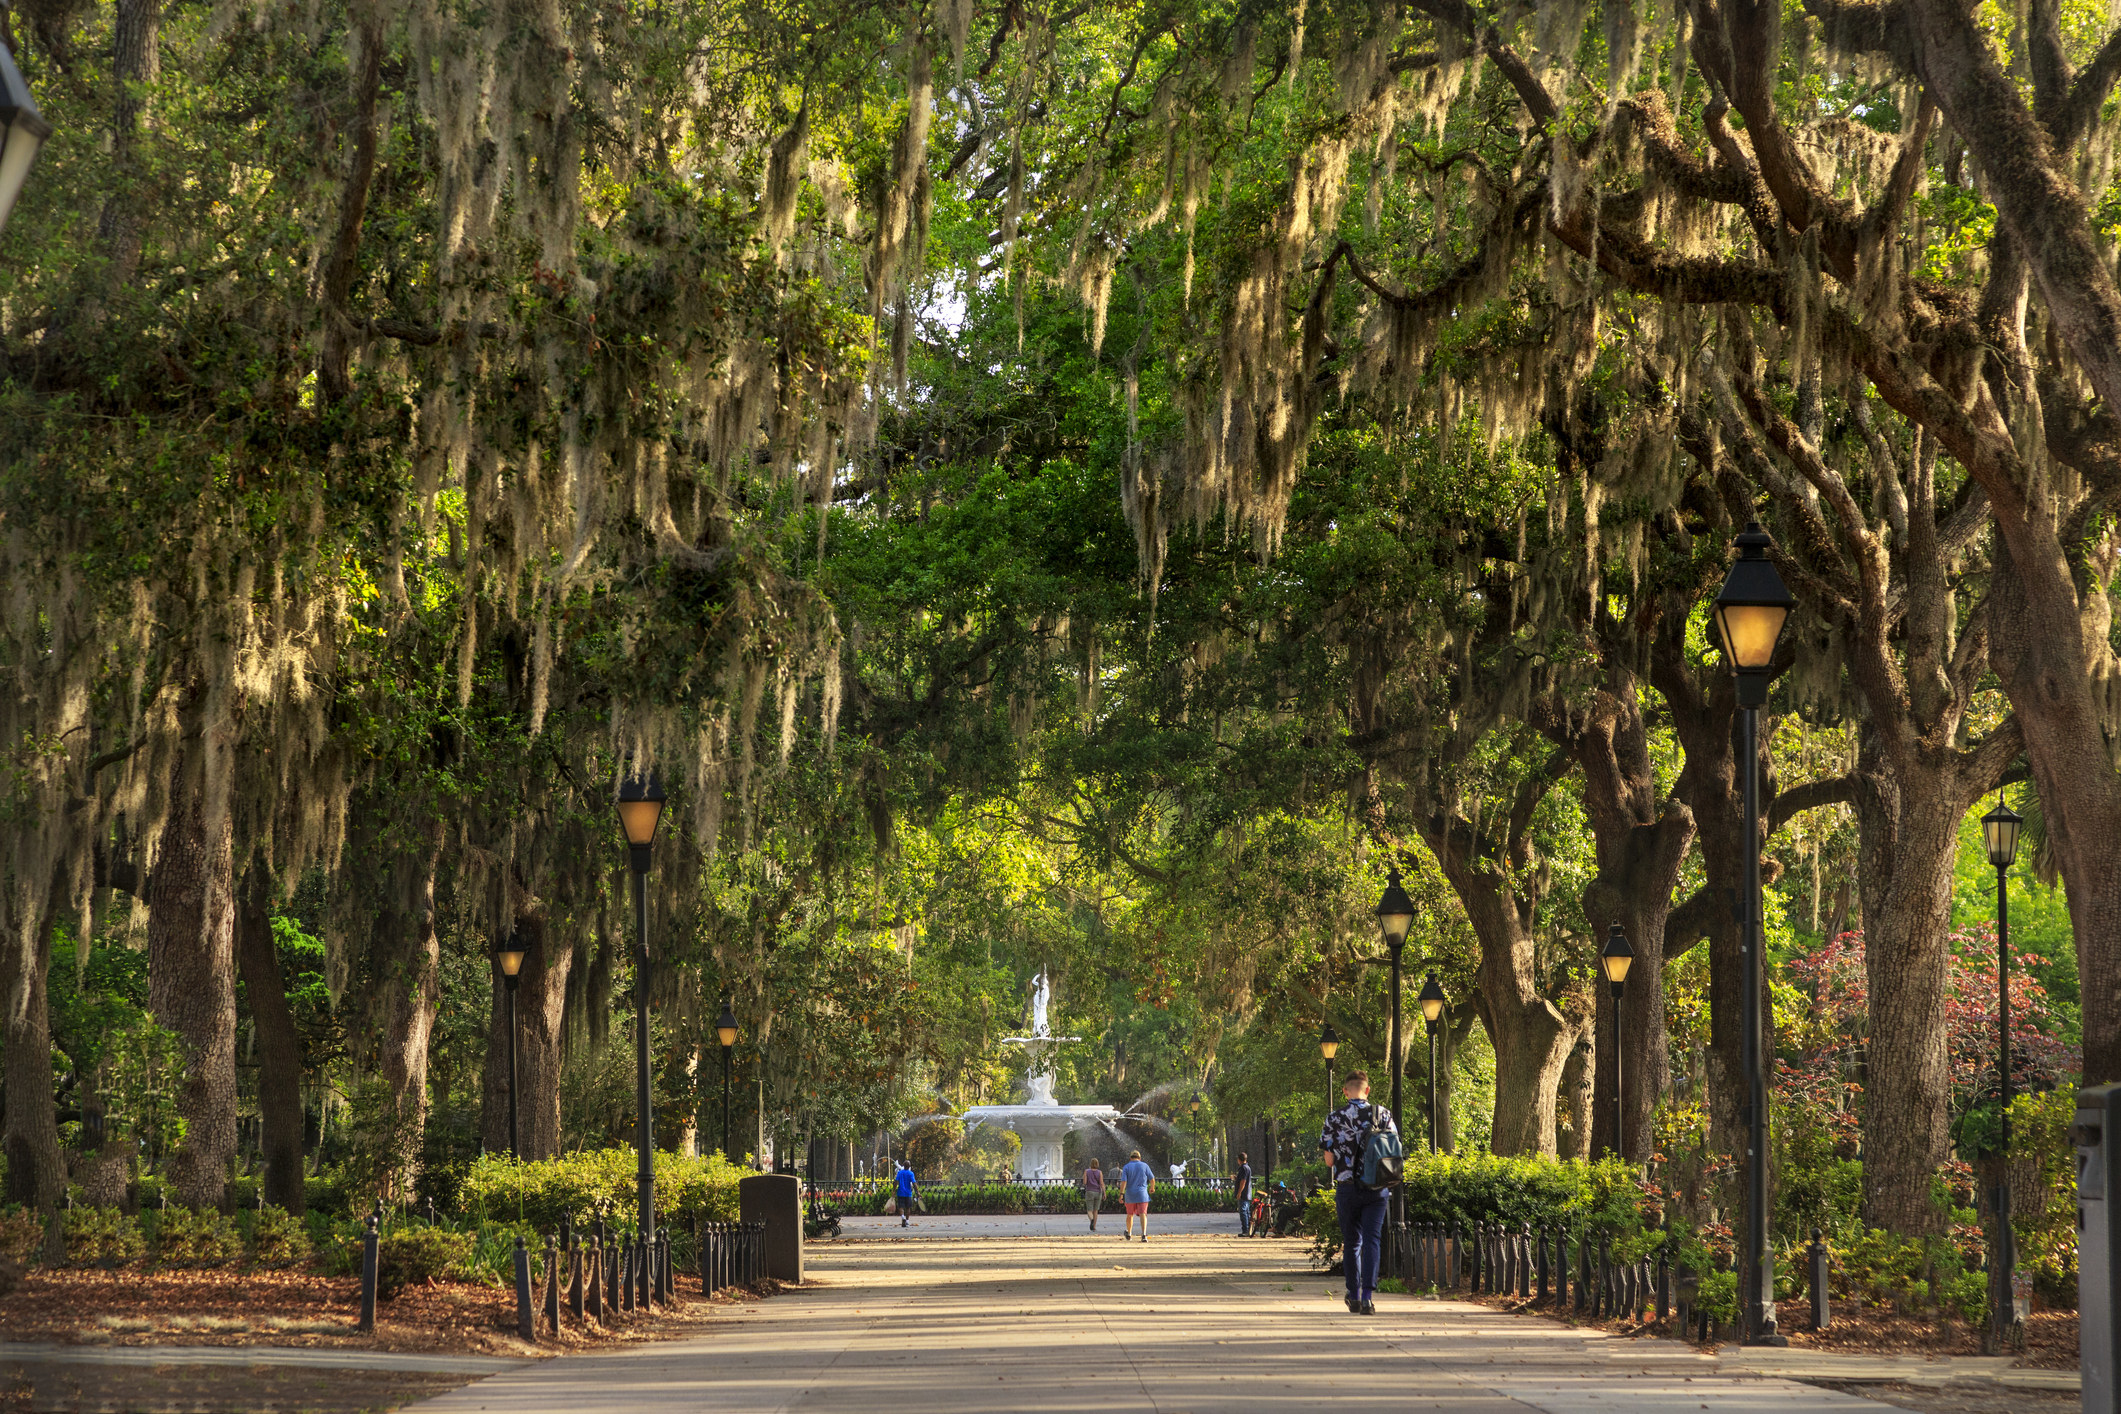 Forsyth Park with people walking under a canopy of trees towards a historic fountain